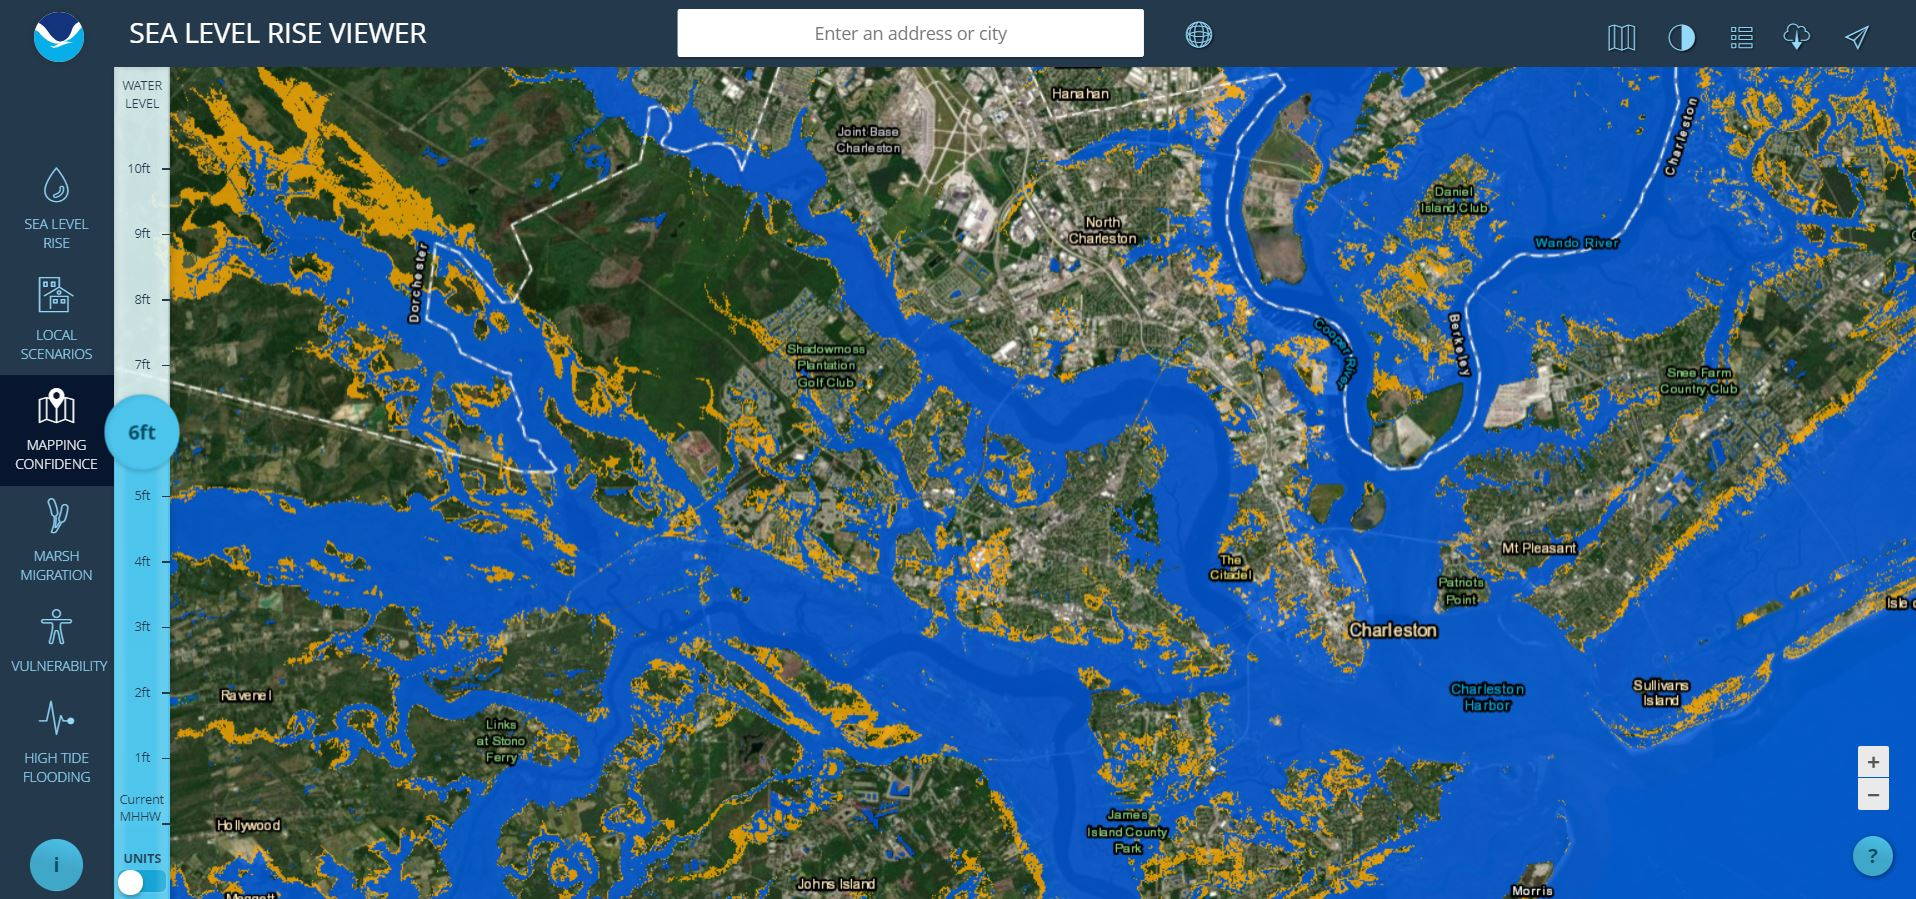 Sea Level Rise Viewer - Florida Global Warming Flood Map